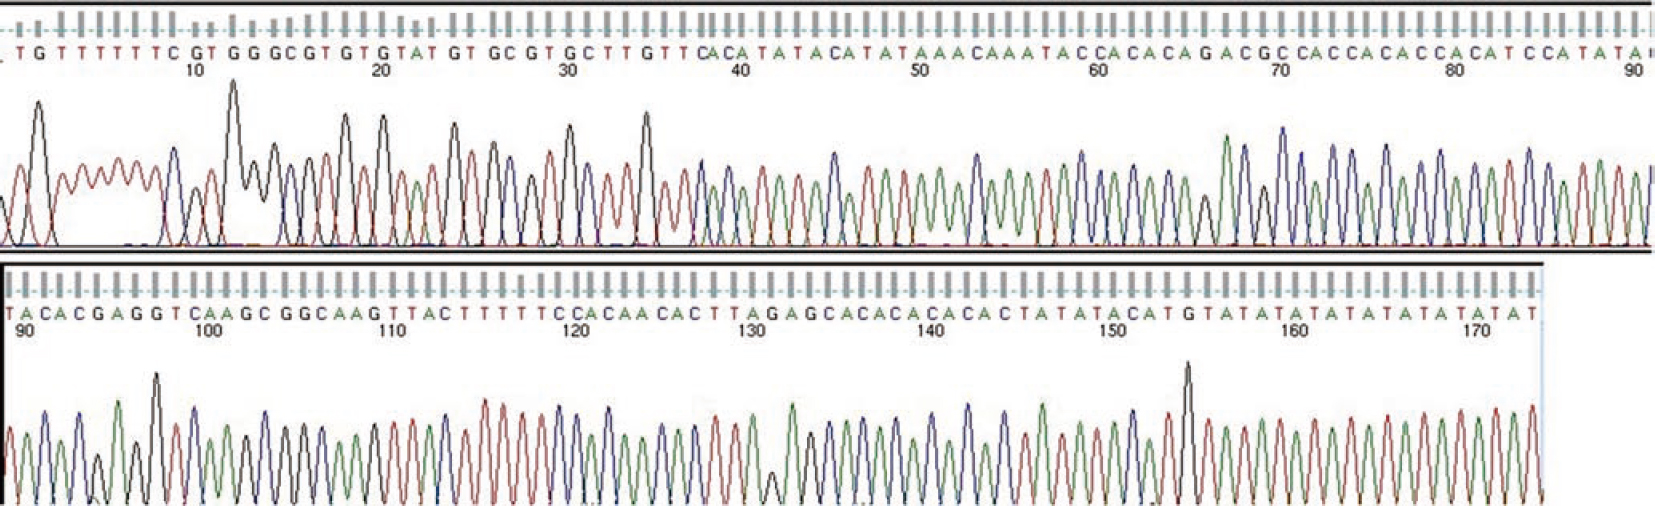 Figure 4: Pathogenic sequencing of <i>Trypanosoma lewisi</i>.